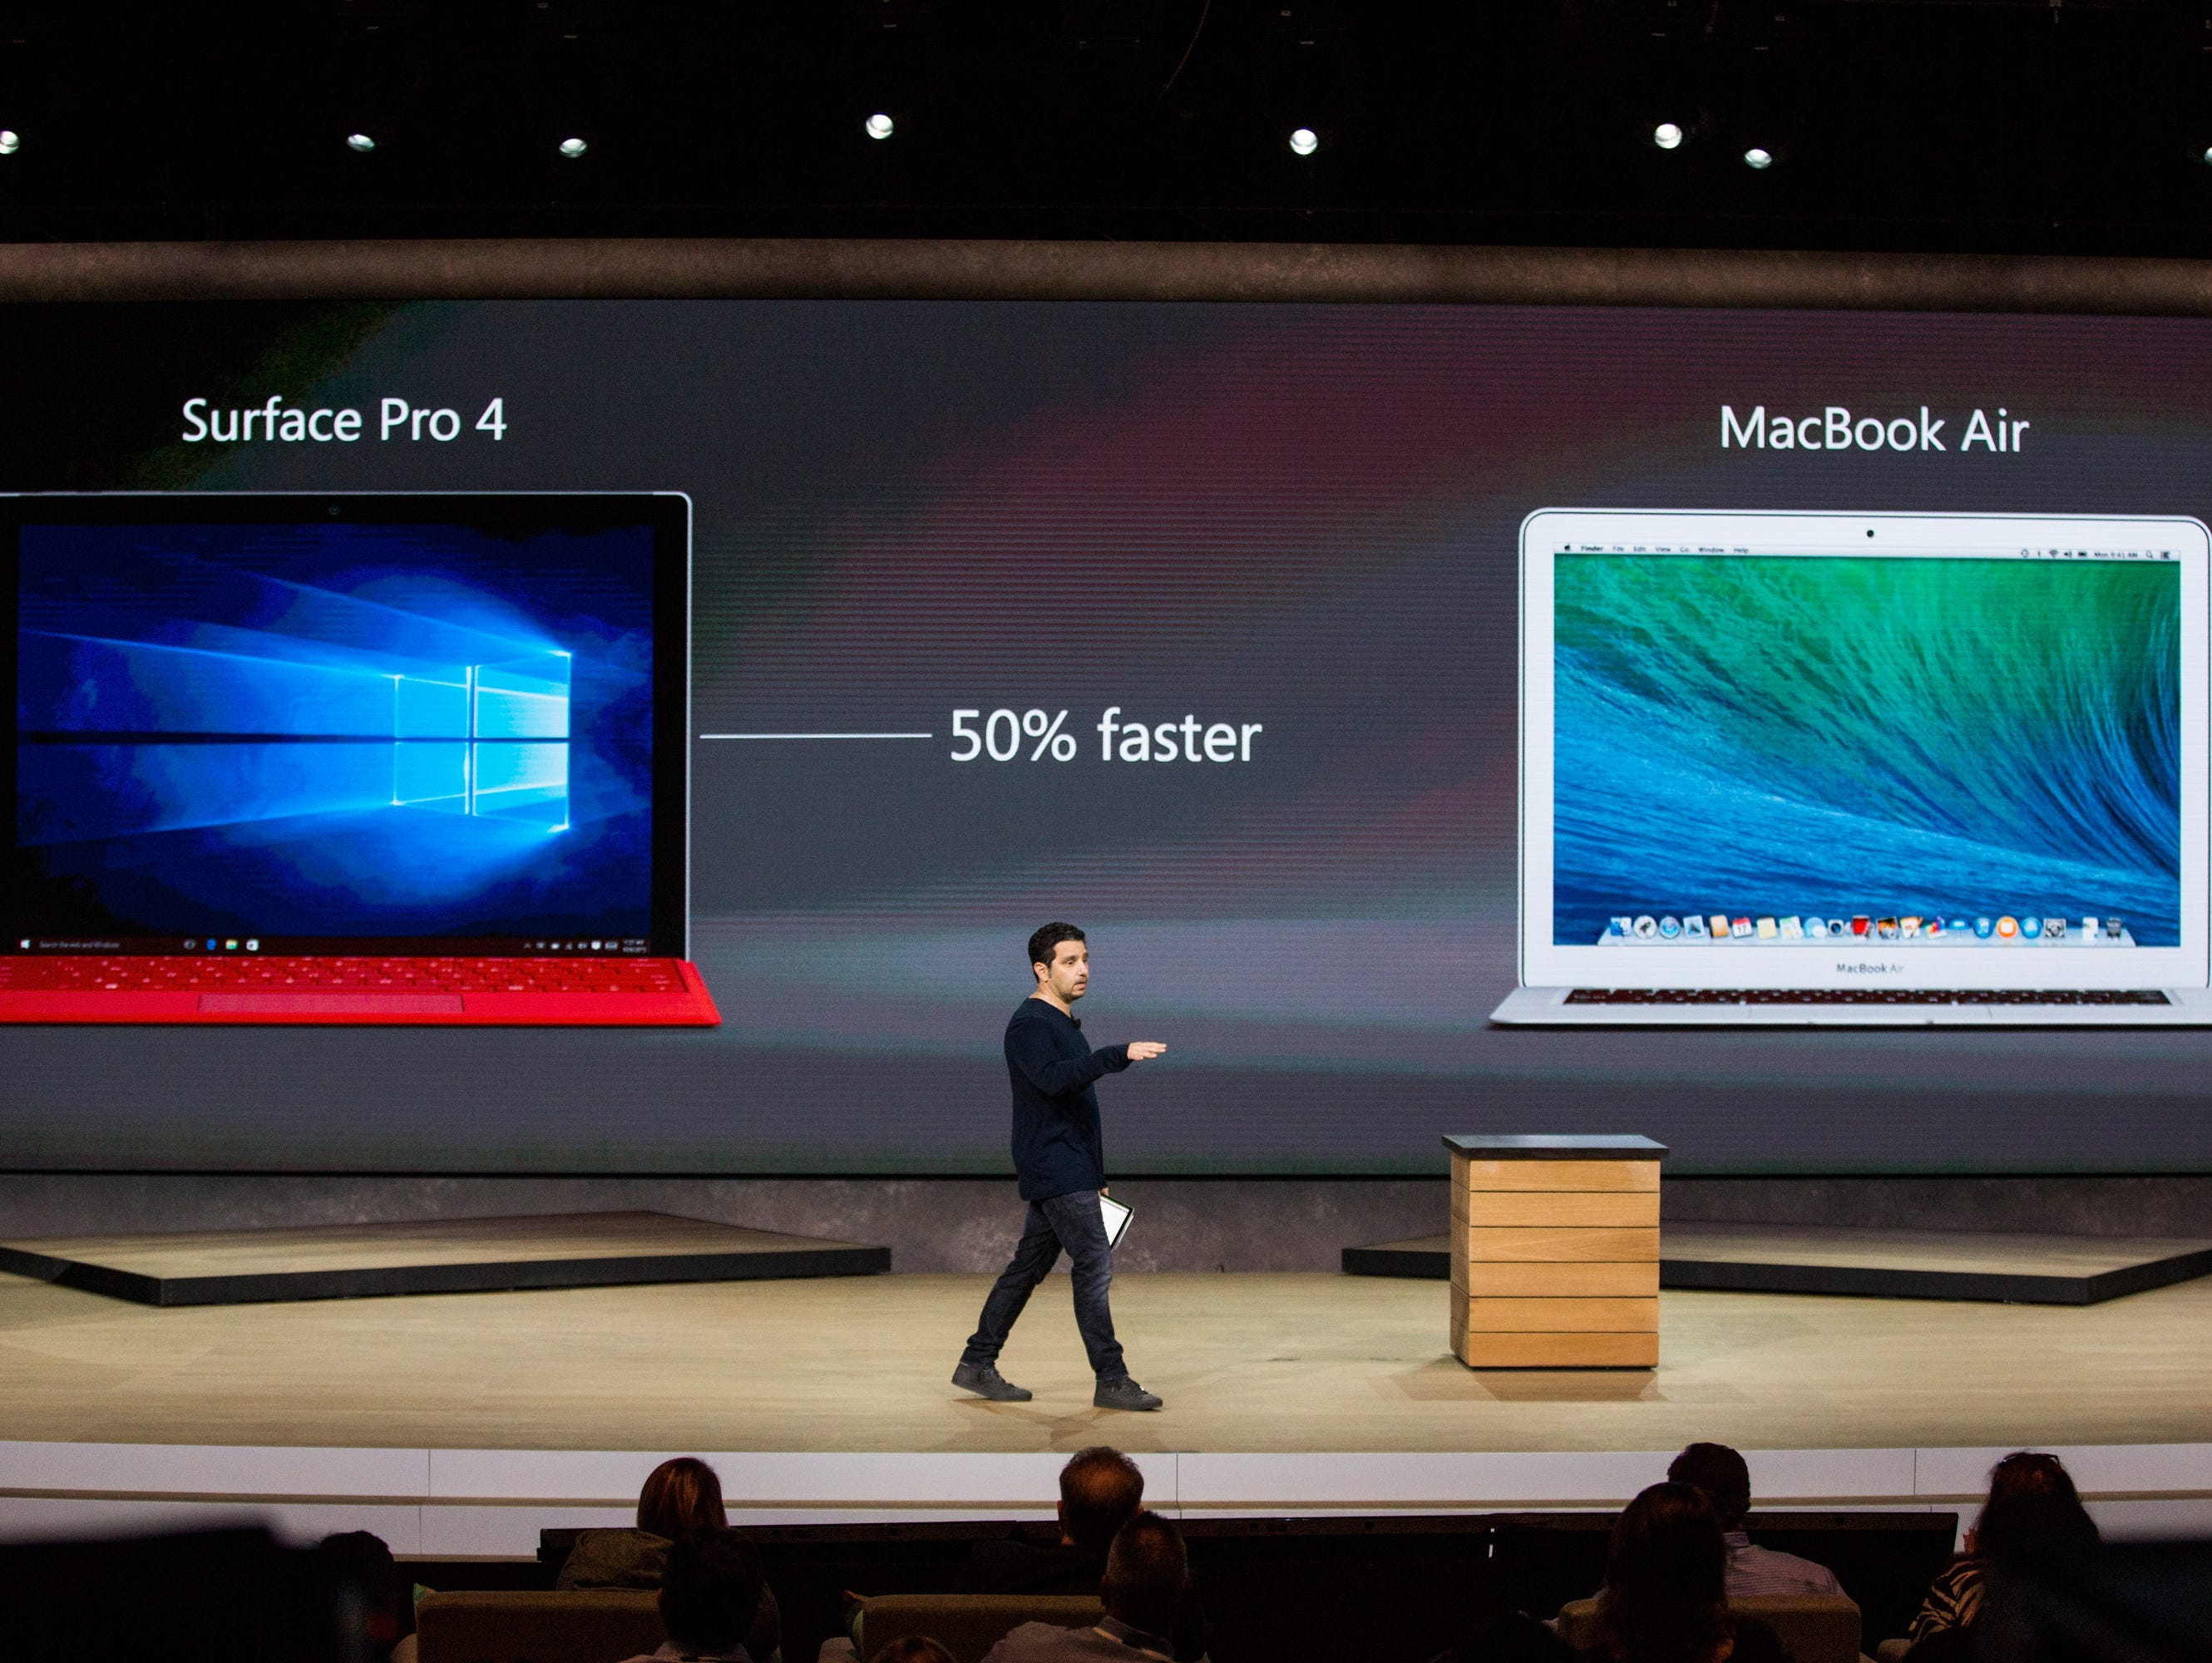 Microsoft Corporate Vice President Panos Panay introduces a new tablet titled the Microsoft Surface Pro 4 at a media event for new Microsoft products on Oct. 6, 2015 in New York City.